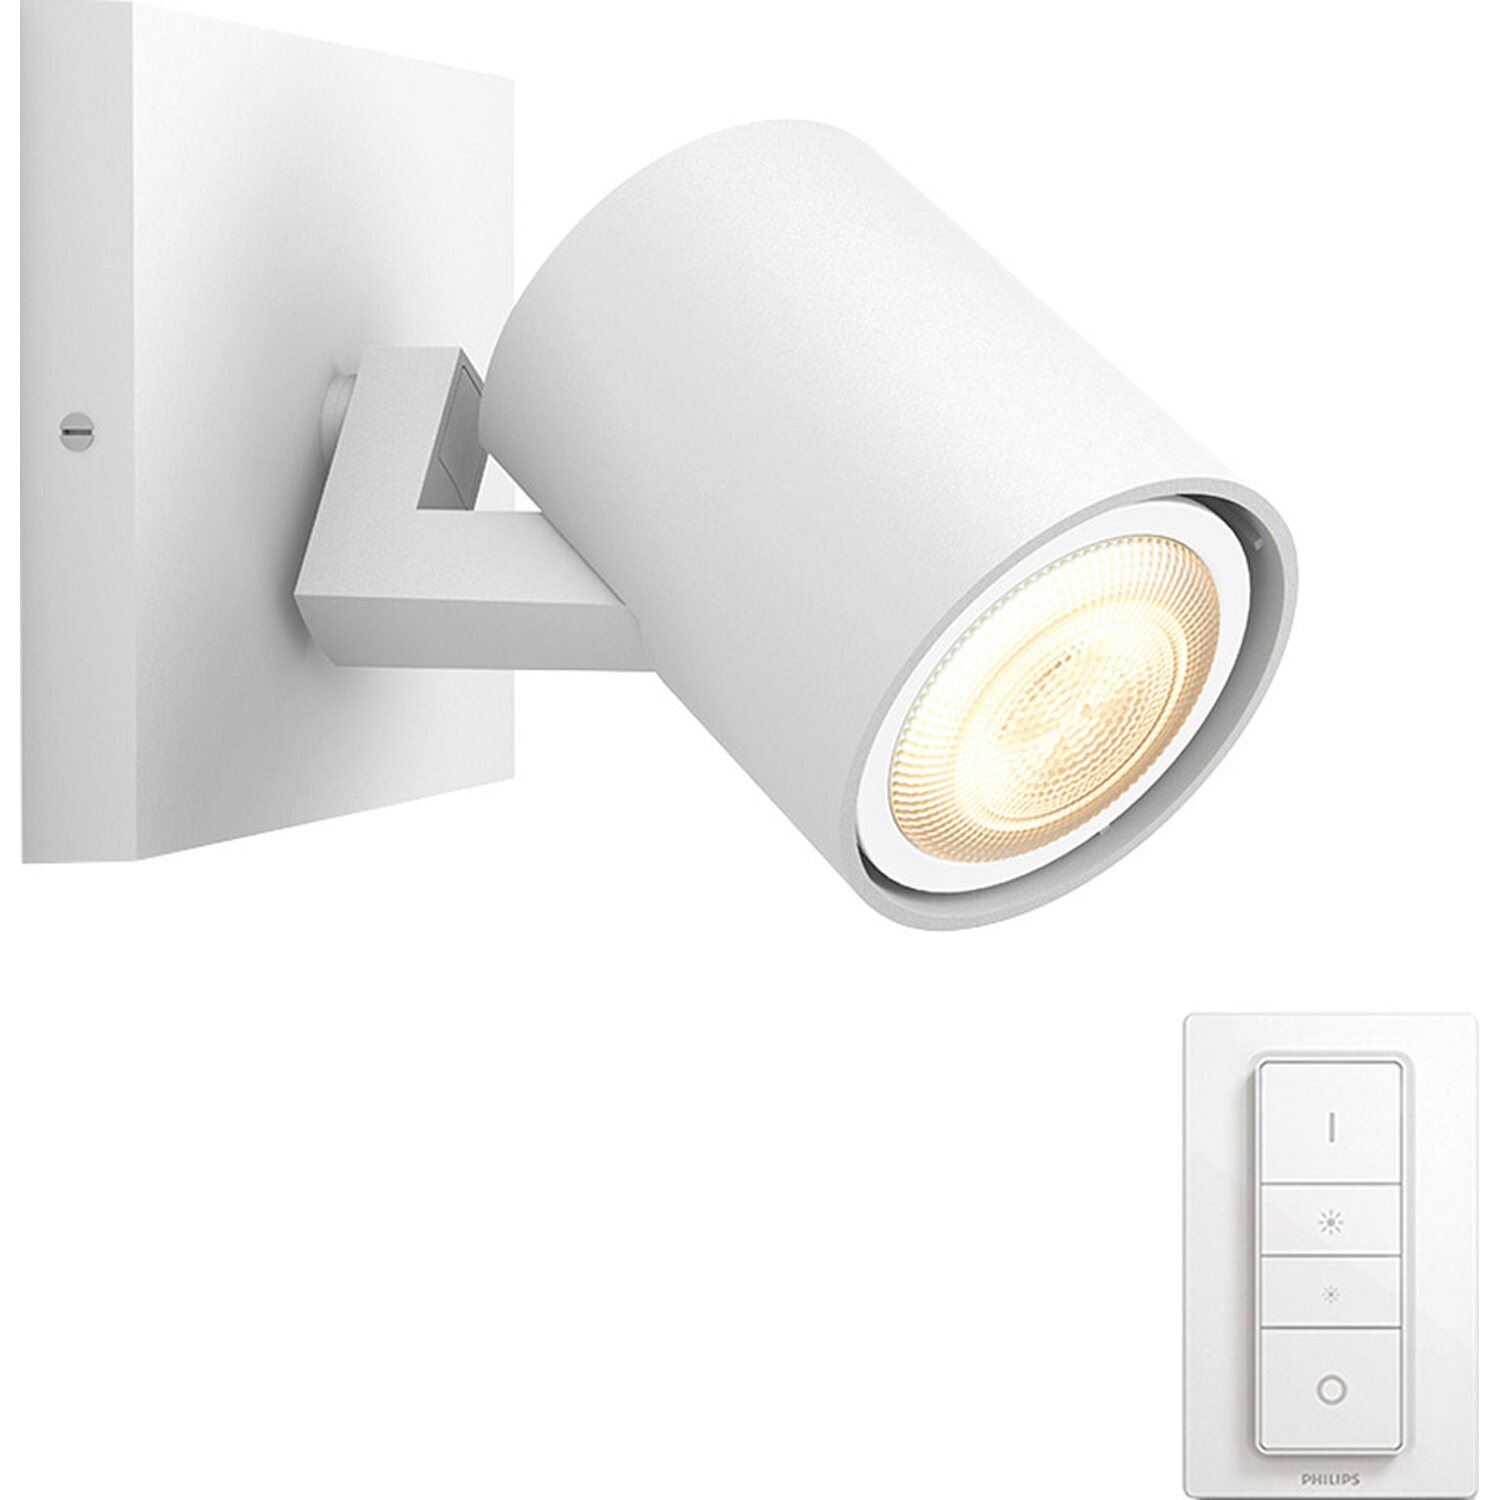 Philips hue faretto led runner con telecomando dimmer for Faretti esterni led